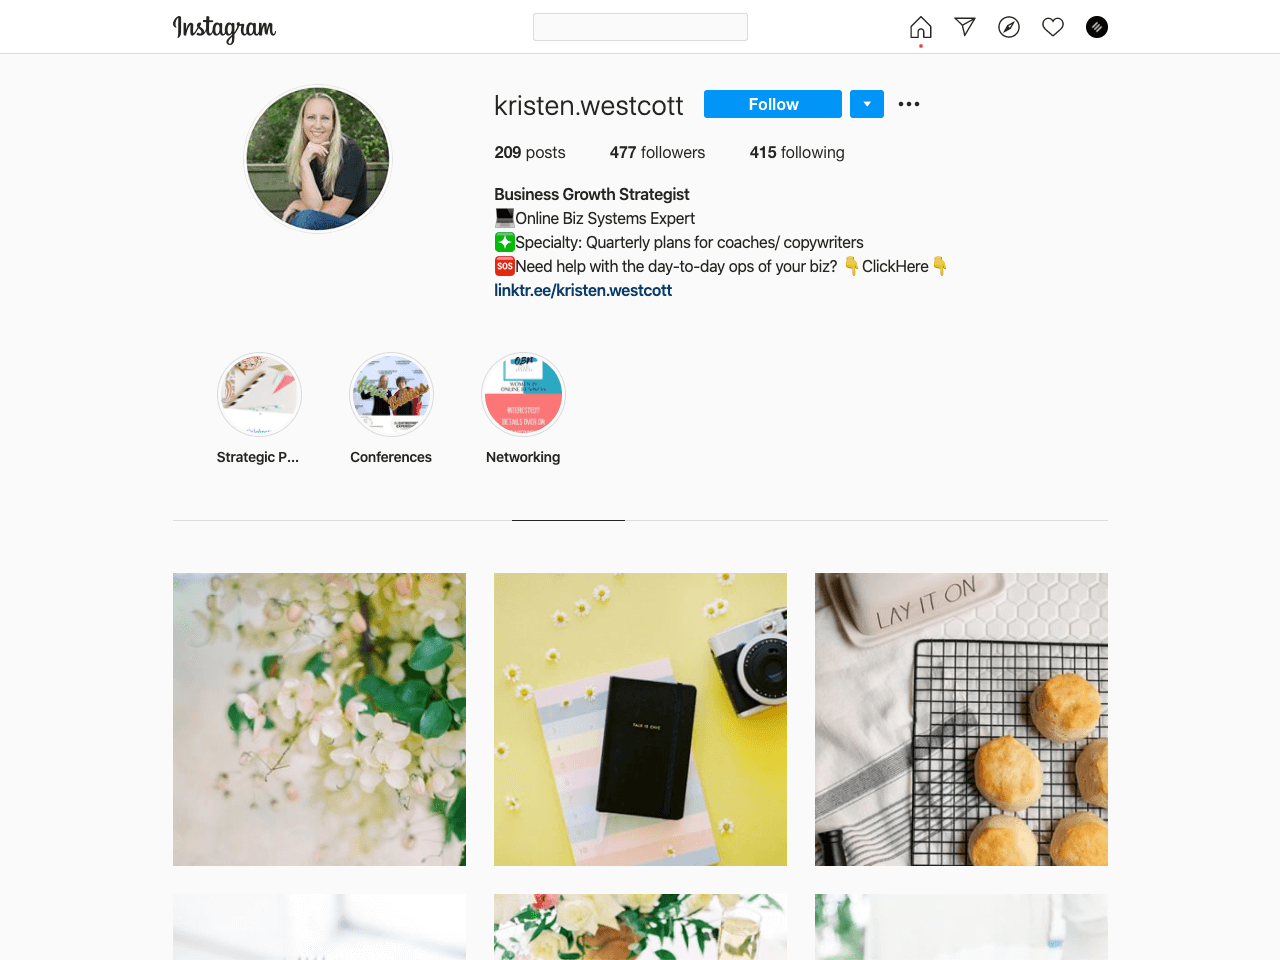 Kristen Wescott uses keywords in her Instagram bio to appear in search results